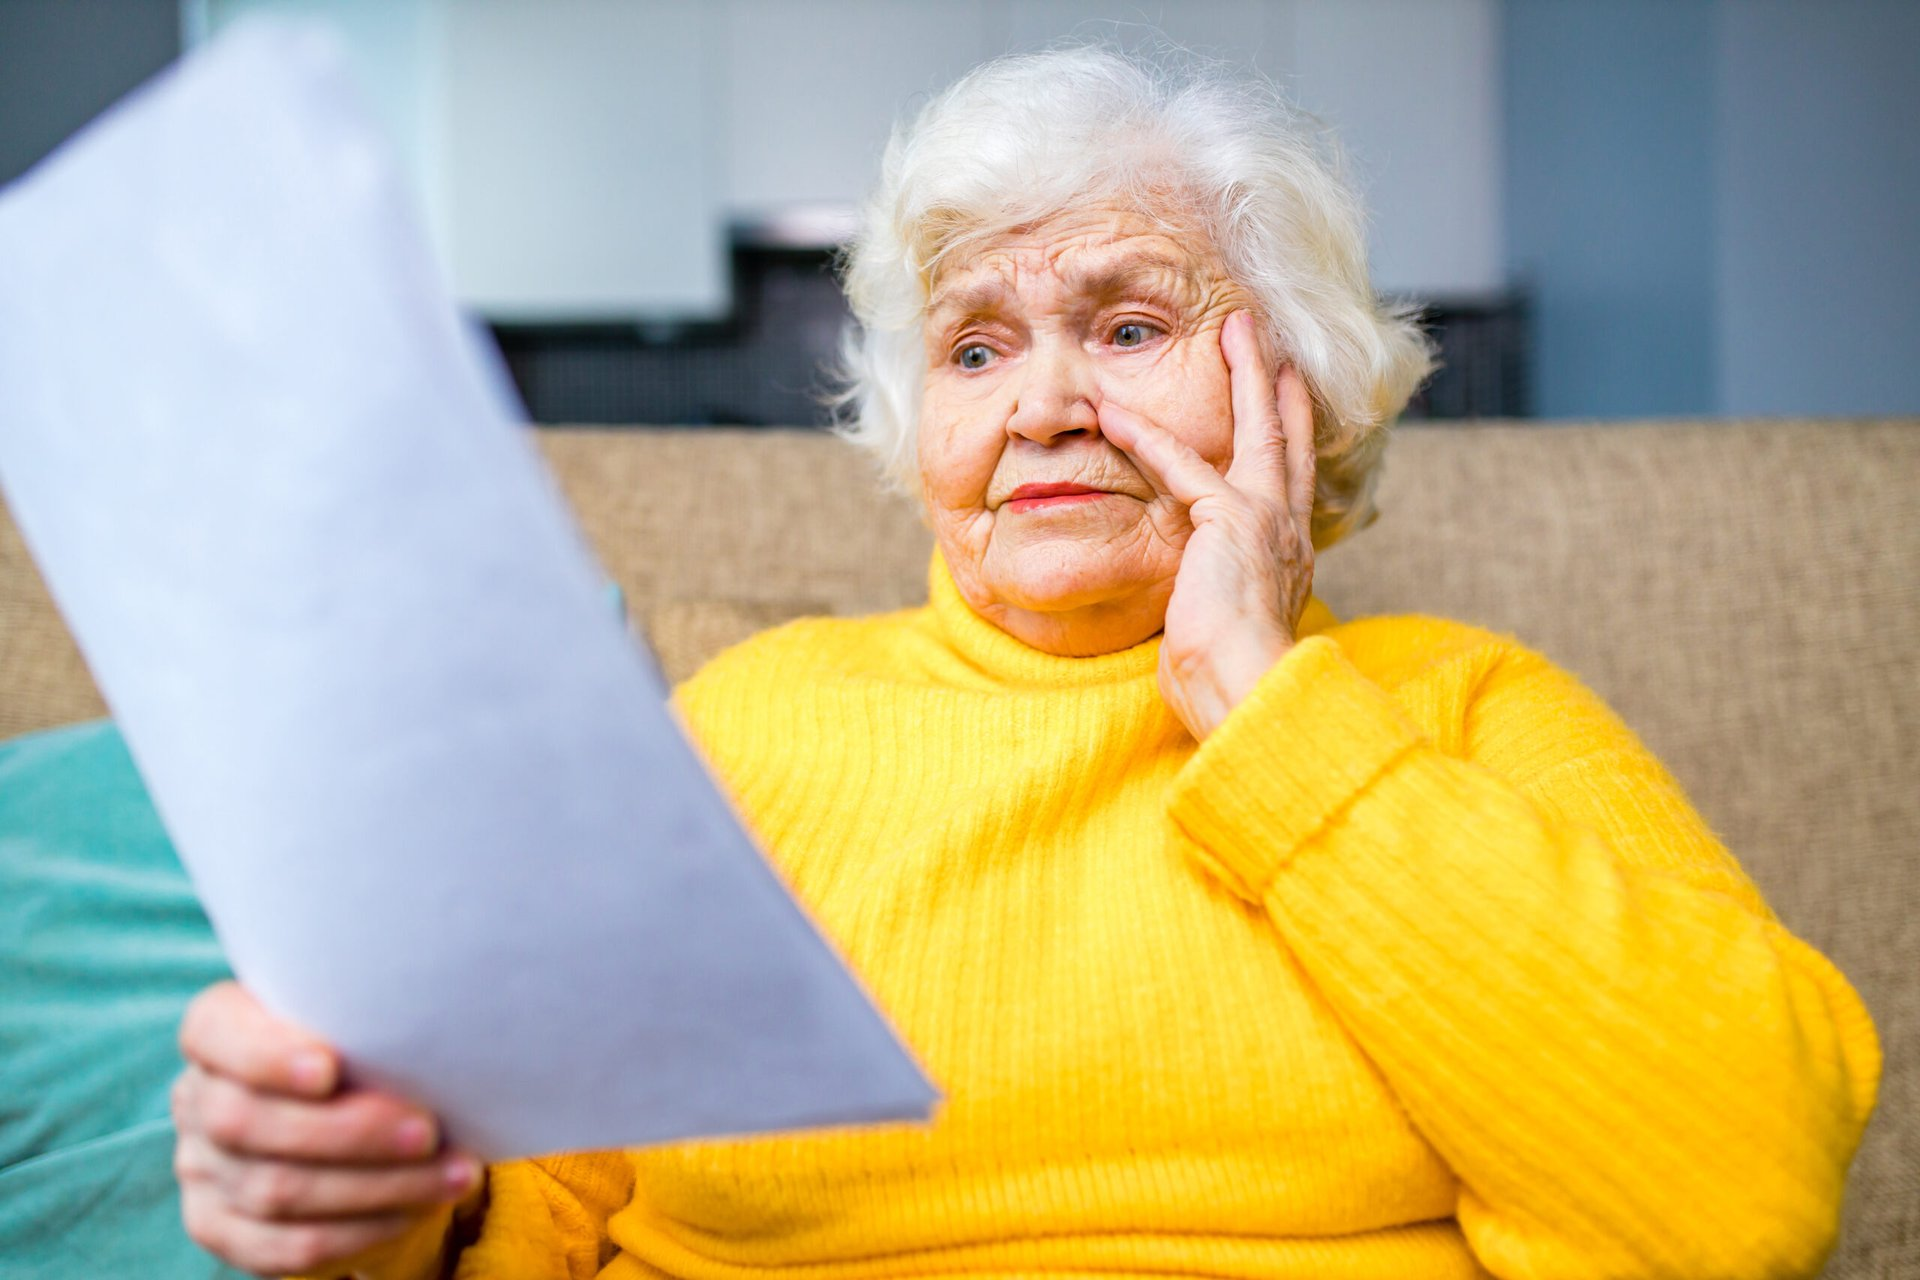 Upset senior worrying over a document